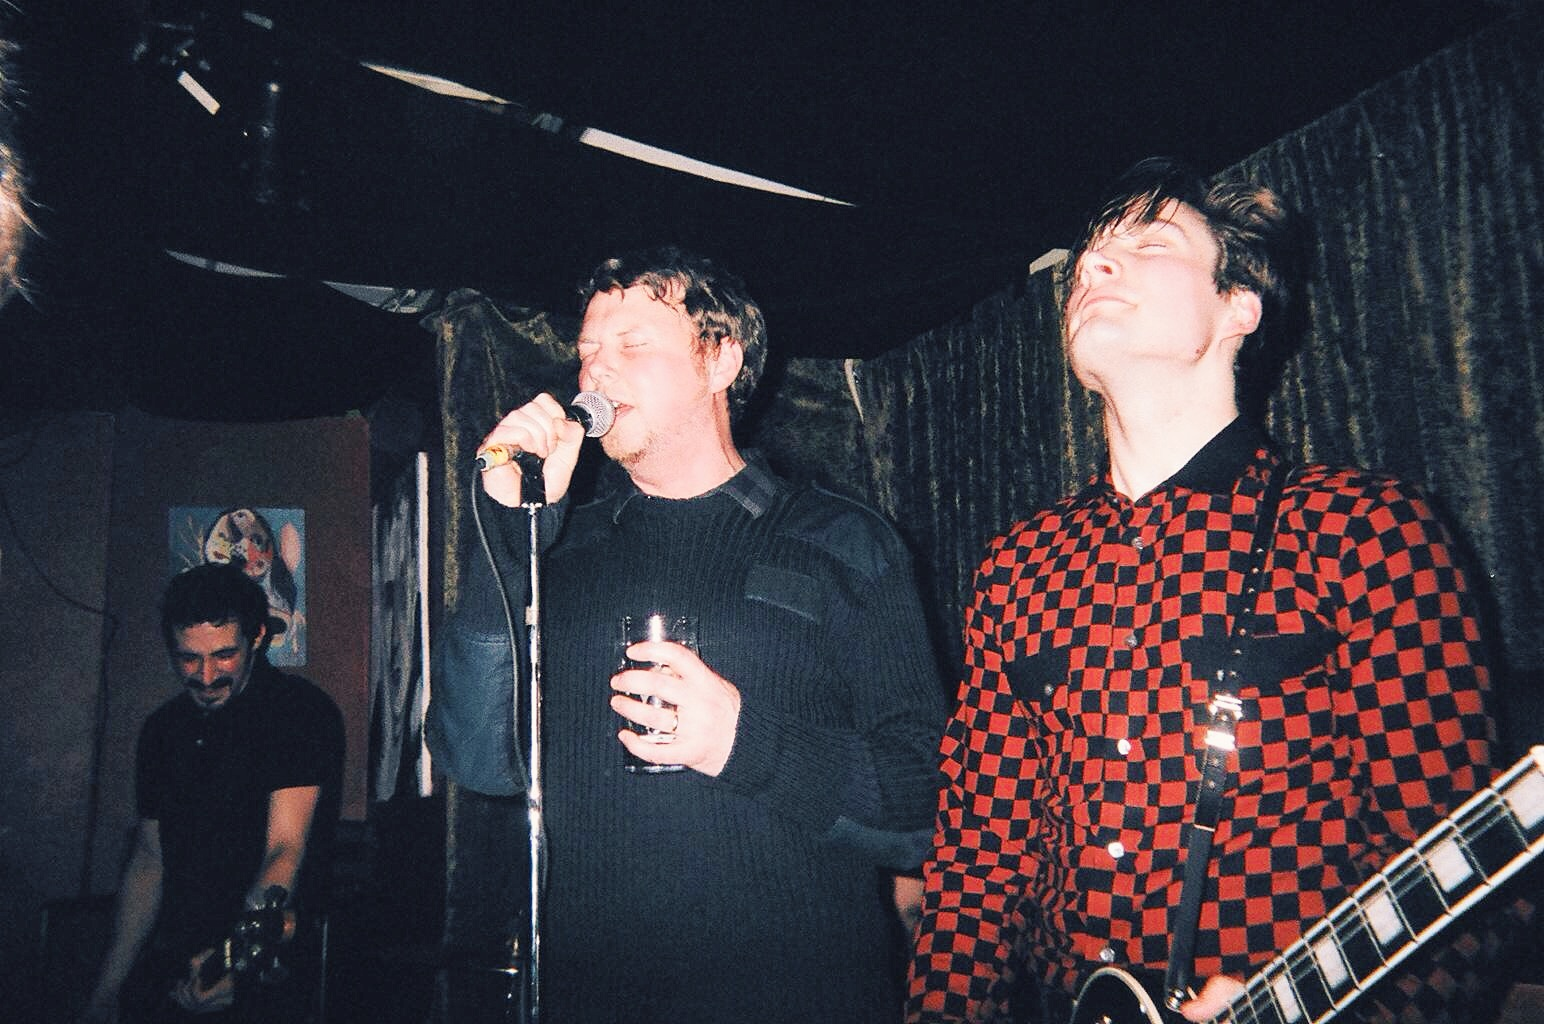 Casbah owner Brodie Schwendiman onstage with The Dirty Nil. Photo by Steph Dubik. Taken on disposable camera.